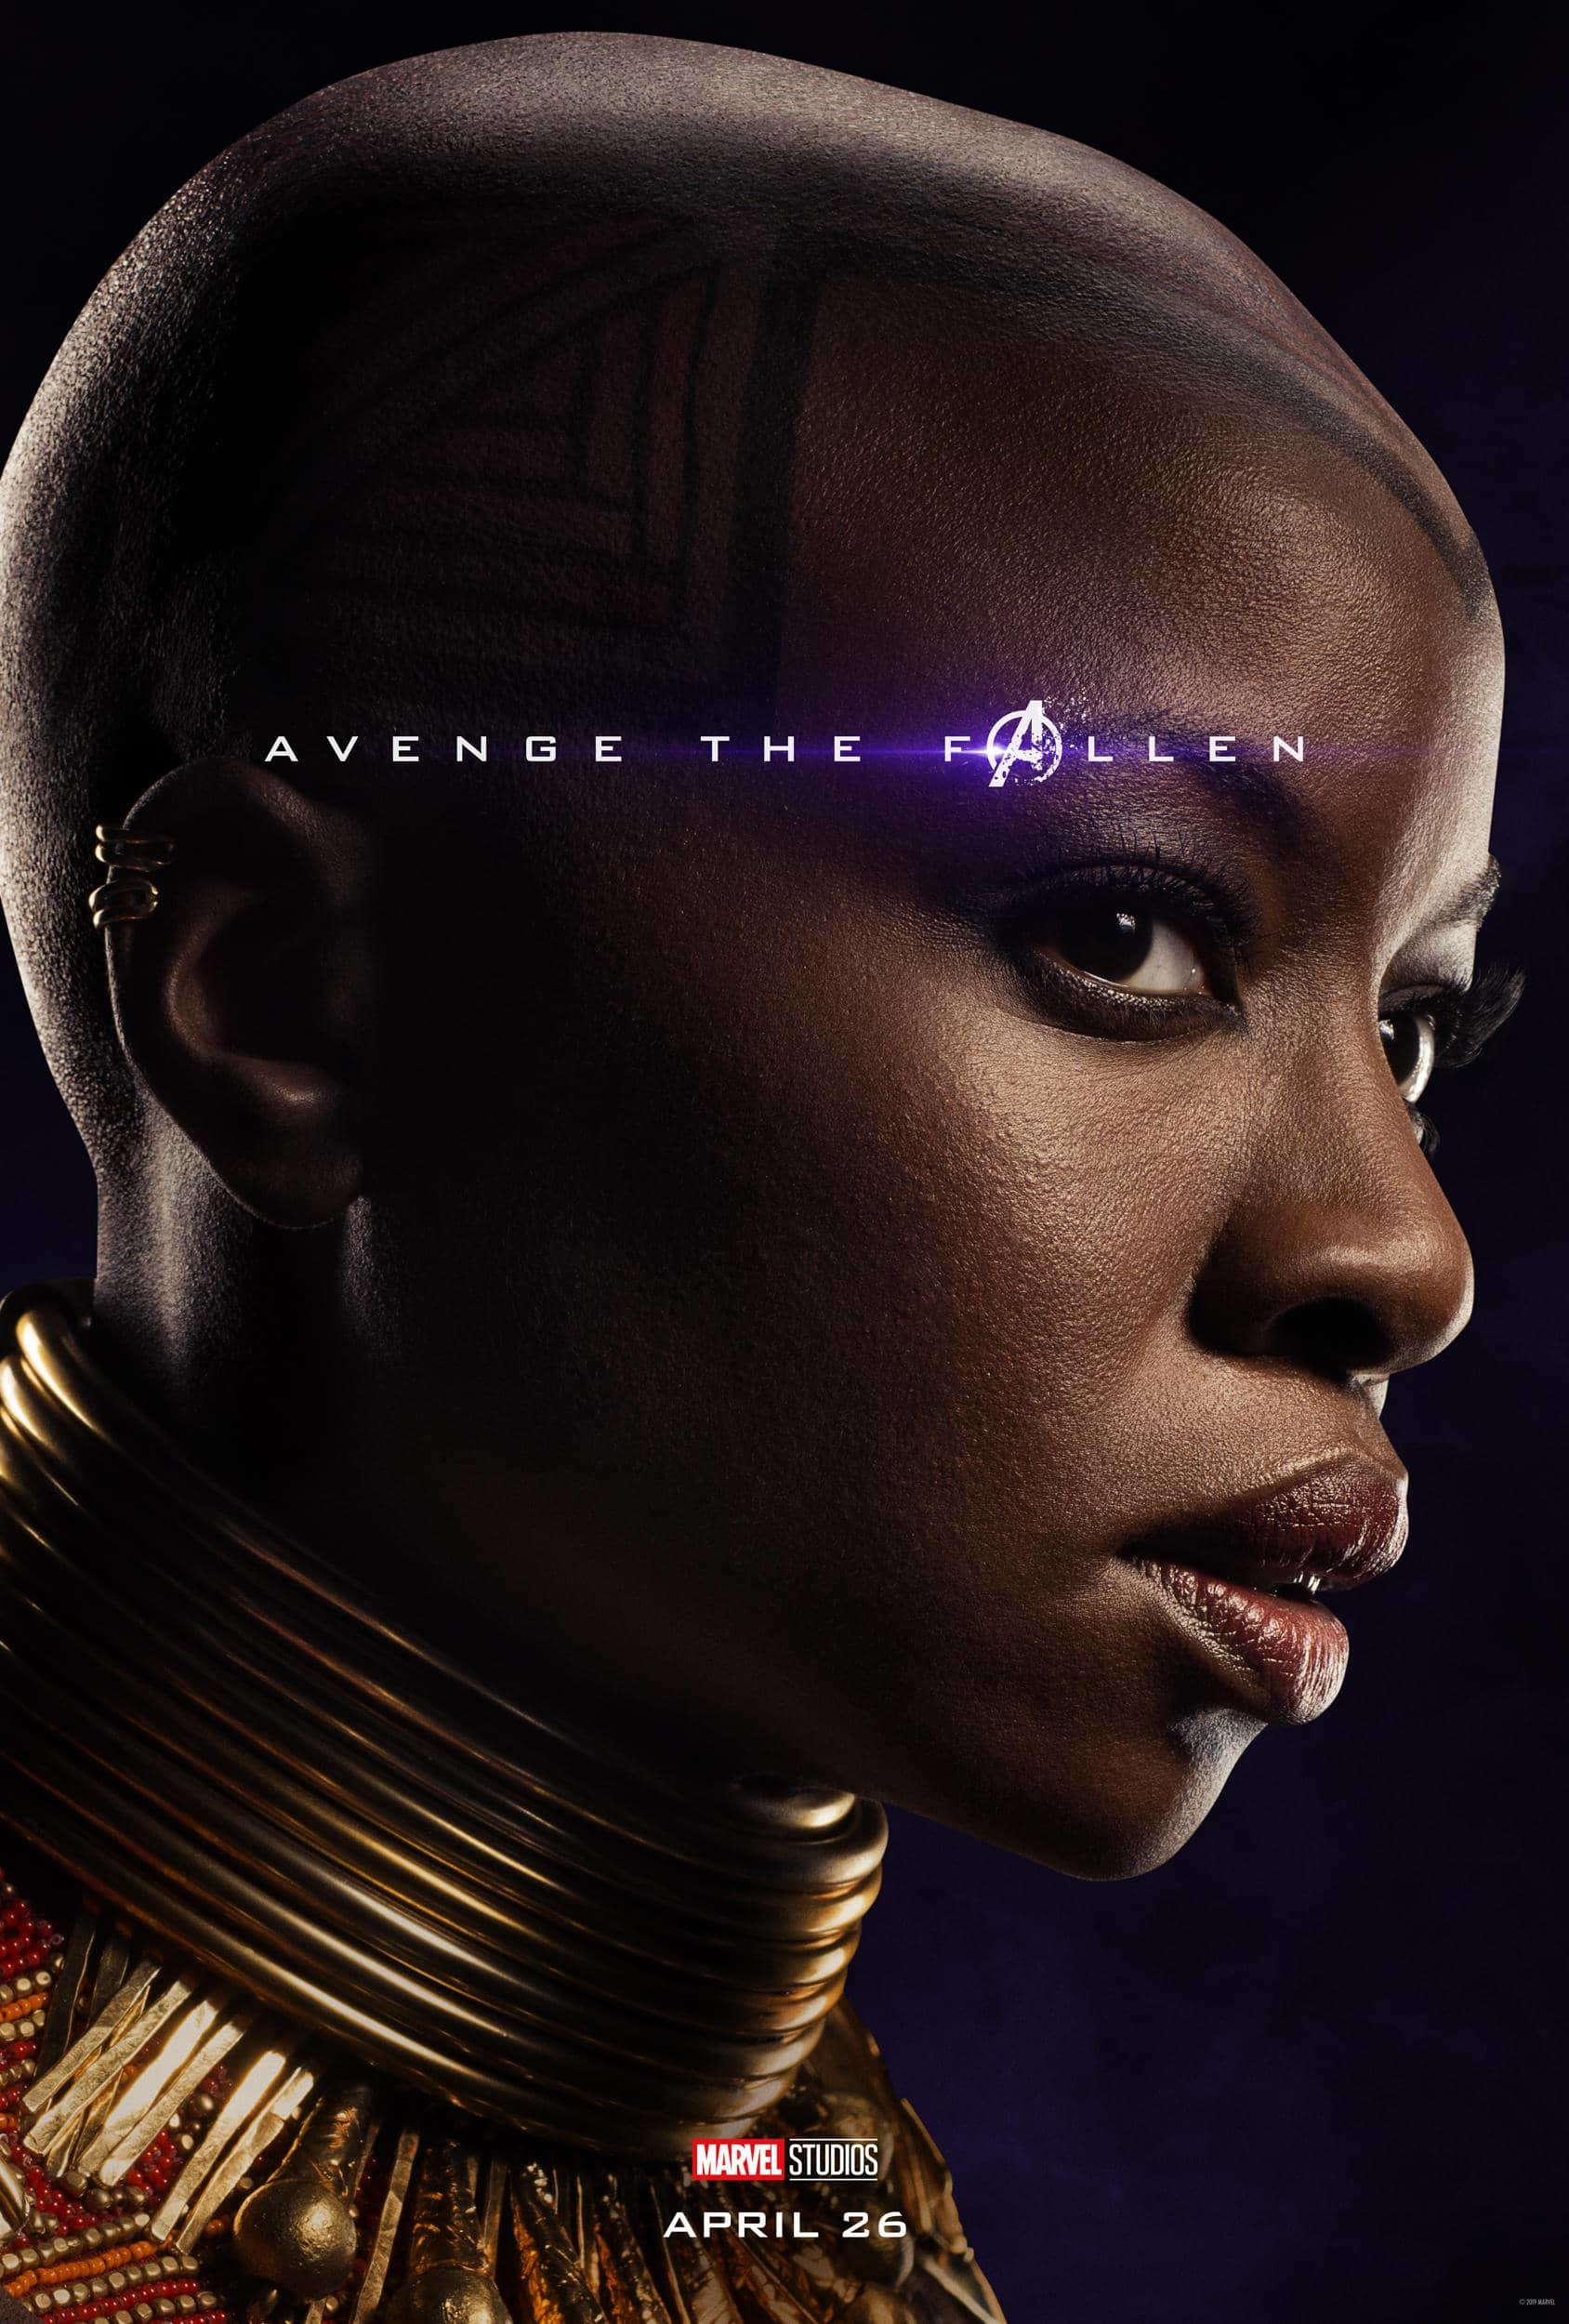 Marvel Studios' Avengers: Endgame Movie Cast Okoye Danai Gurira